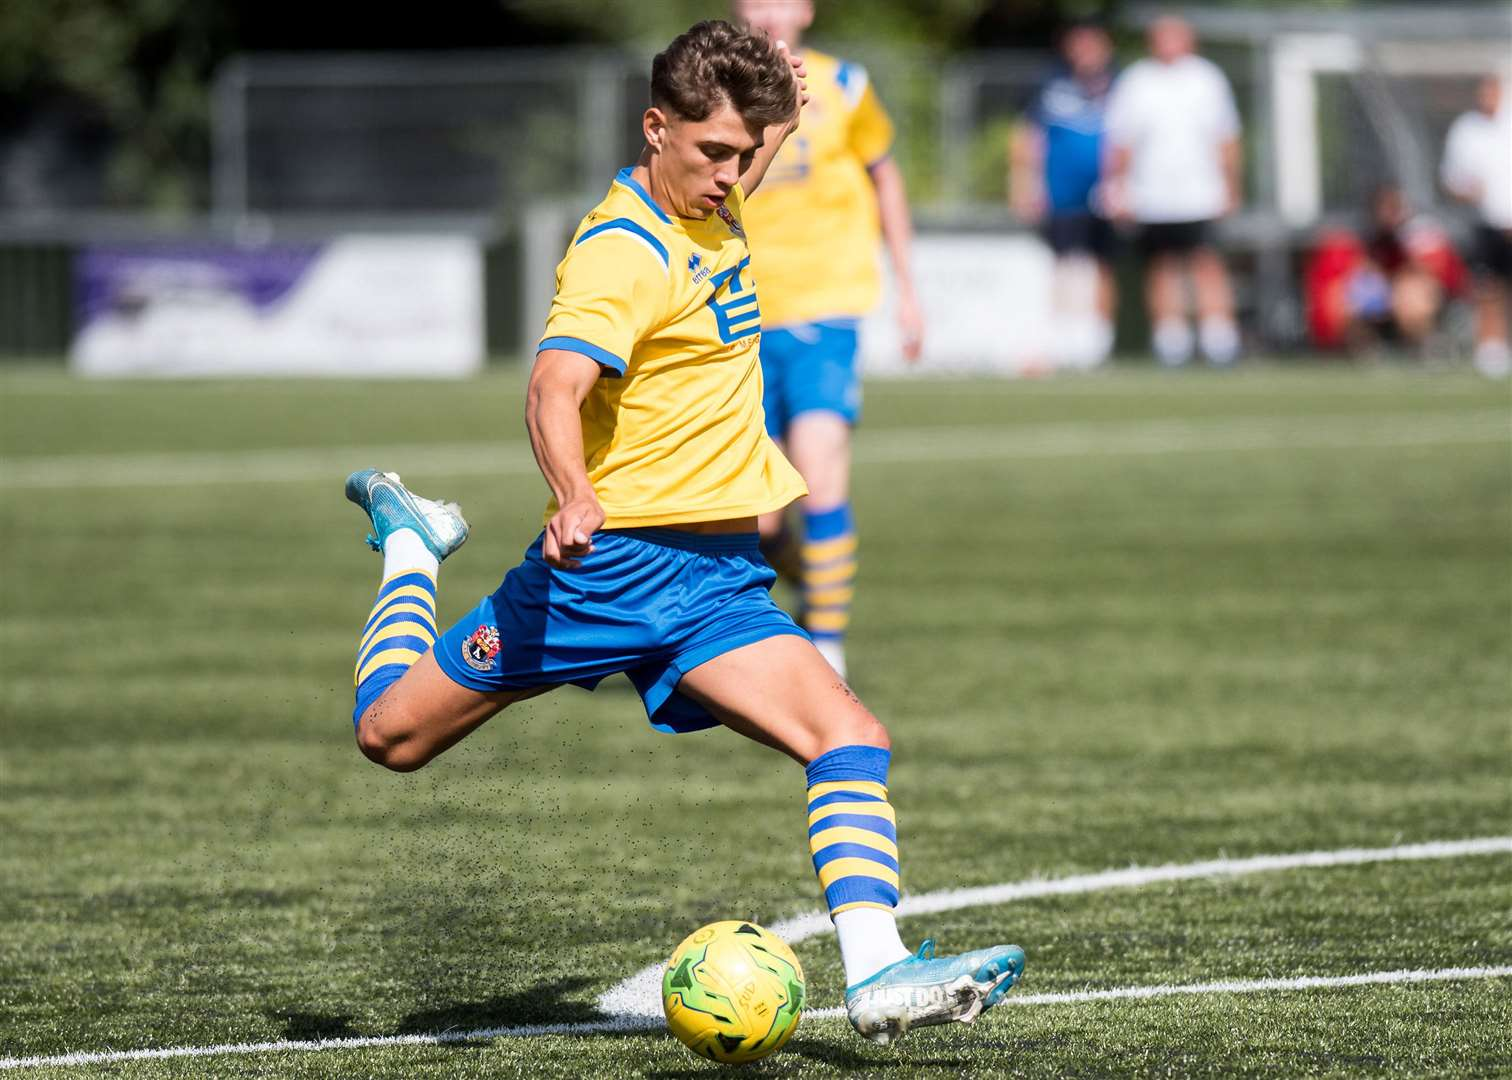 Shane Temple scored all four goals for AFC Sudbury against Harborough TownPicture: Mark Westley